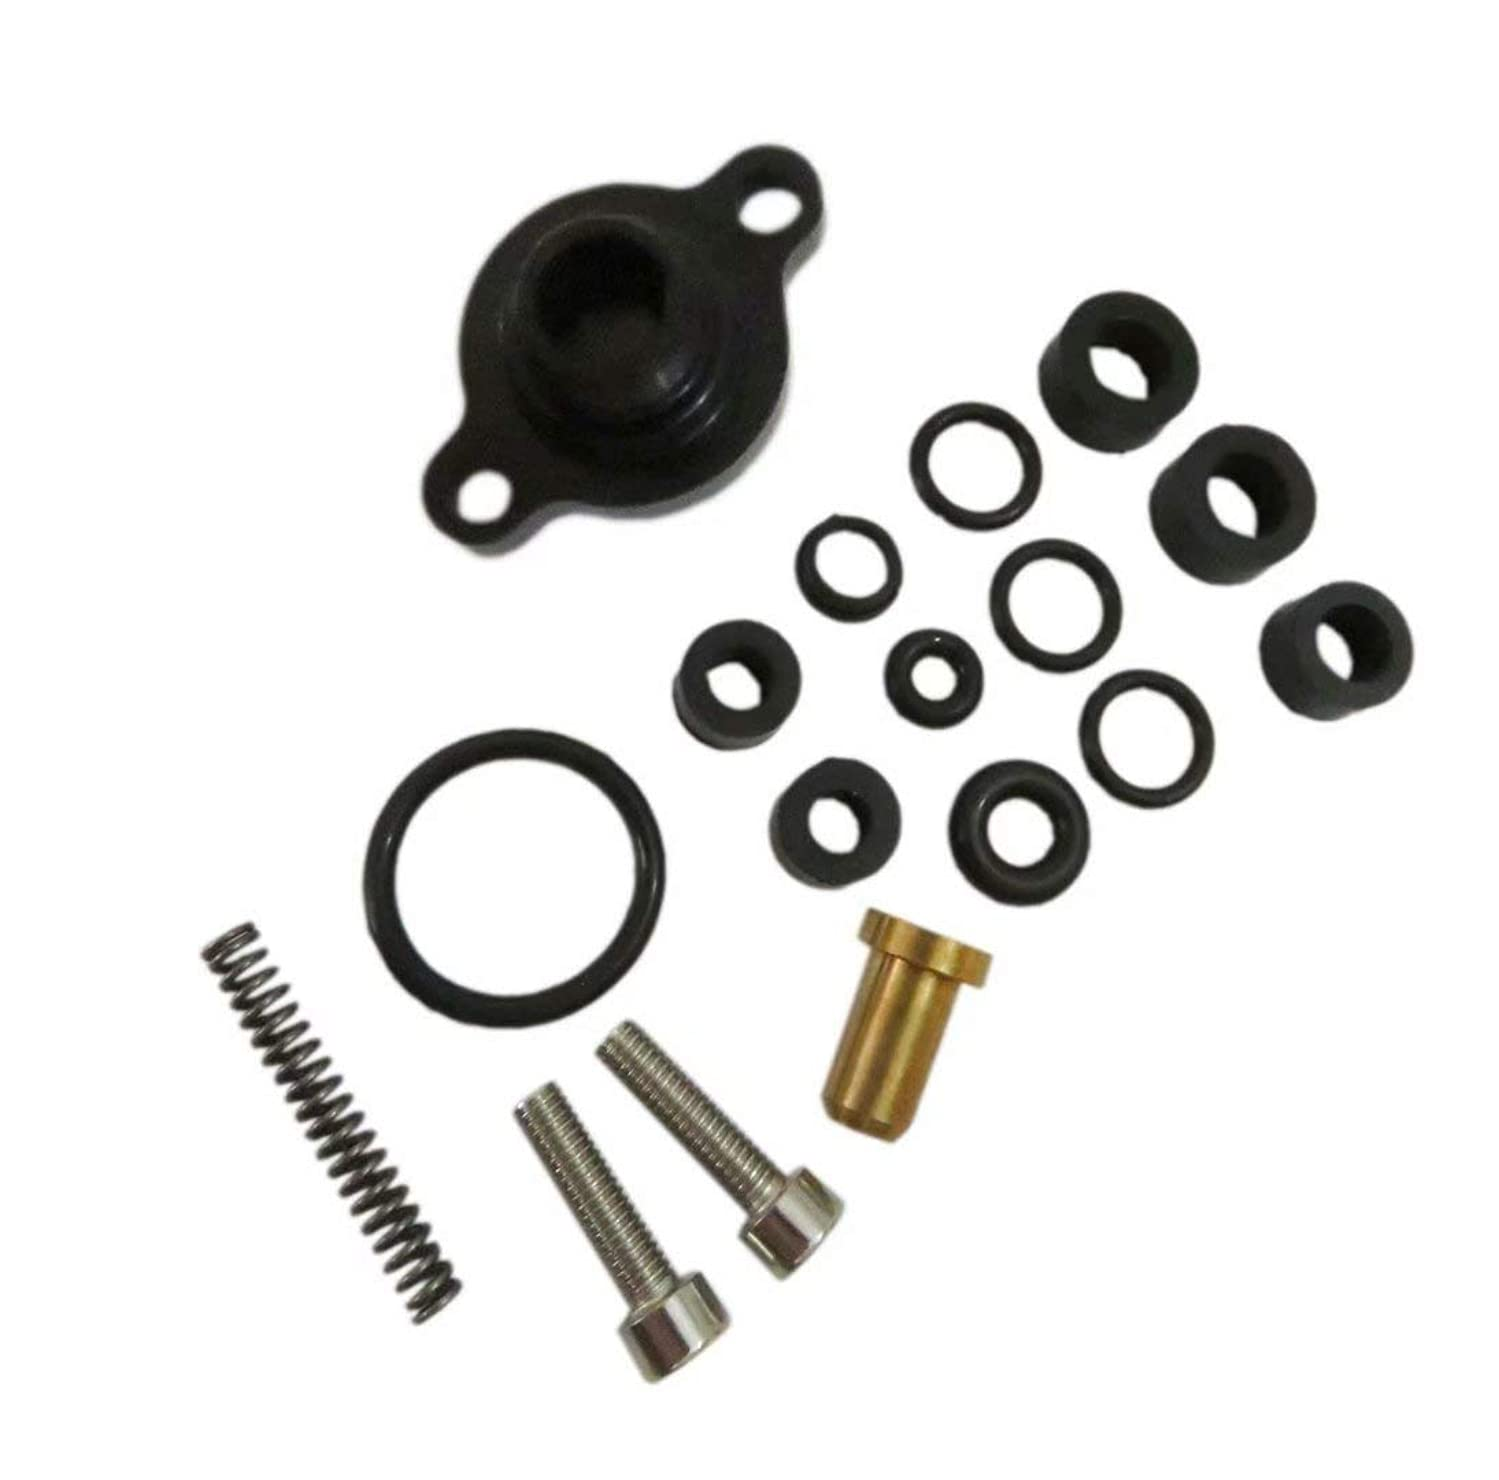 Brand New Fuel Relief Pressure Spring&Seal Kit For 7.3L 7.3 Powerstroke Diesel Ford 1999-2003